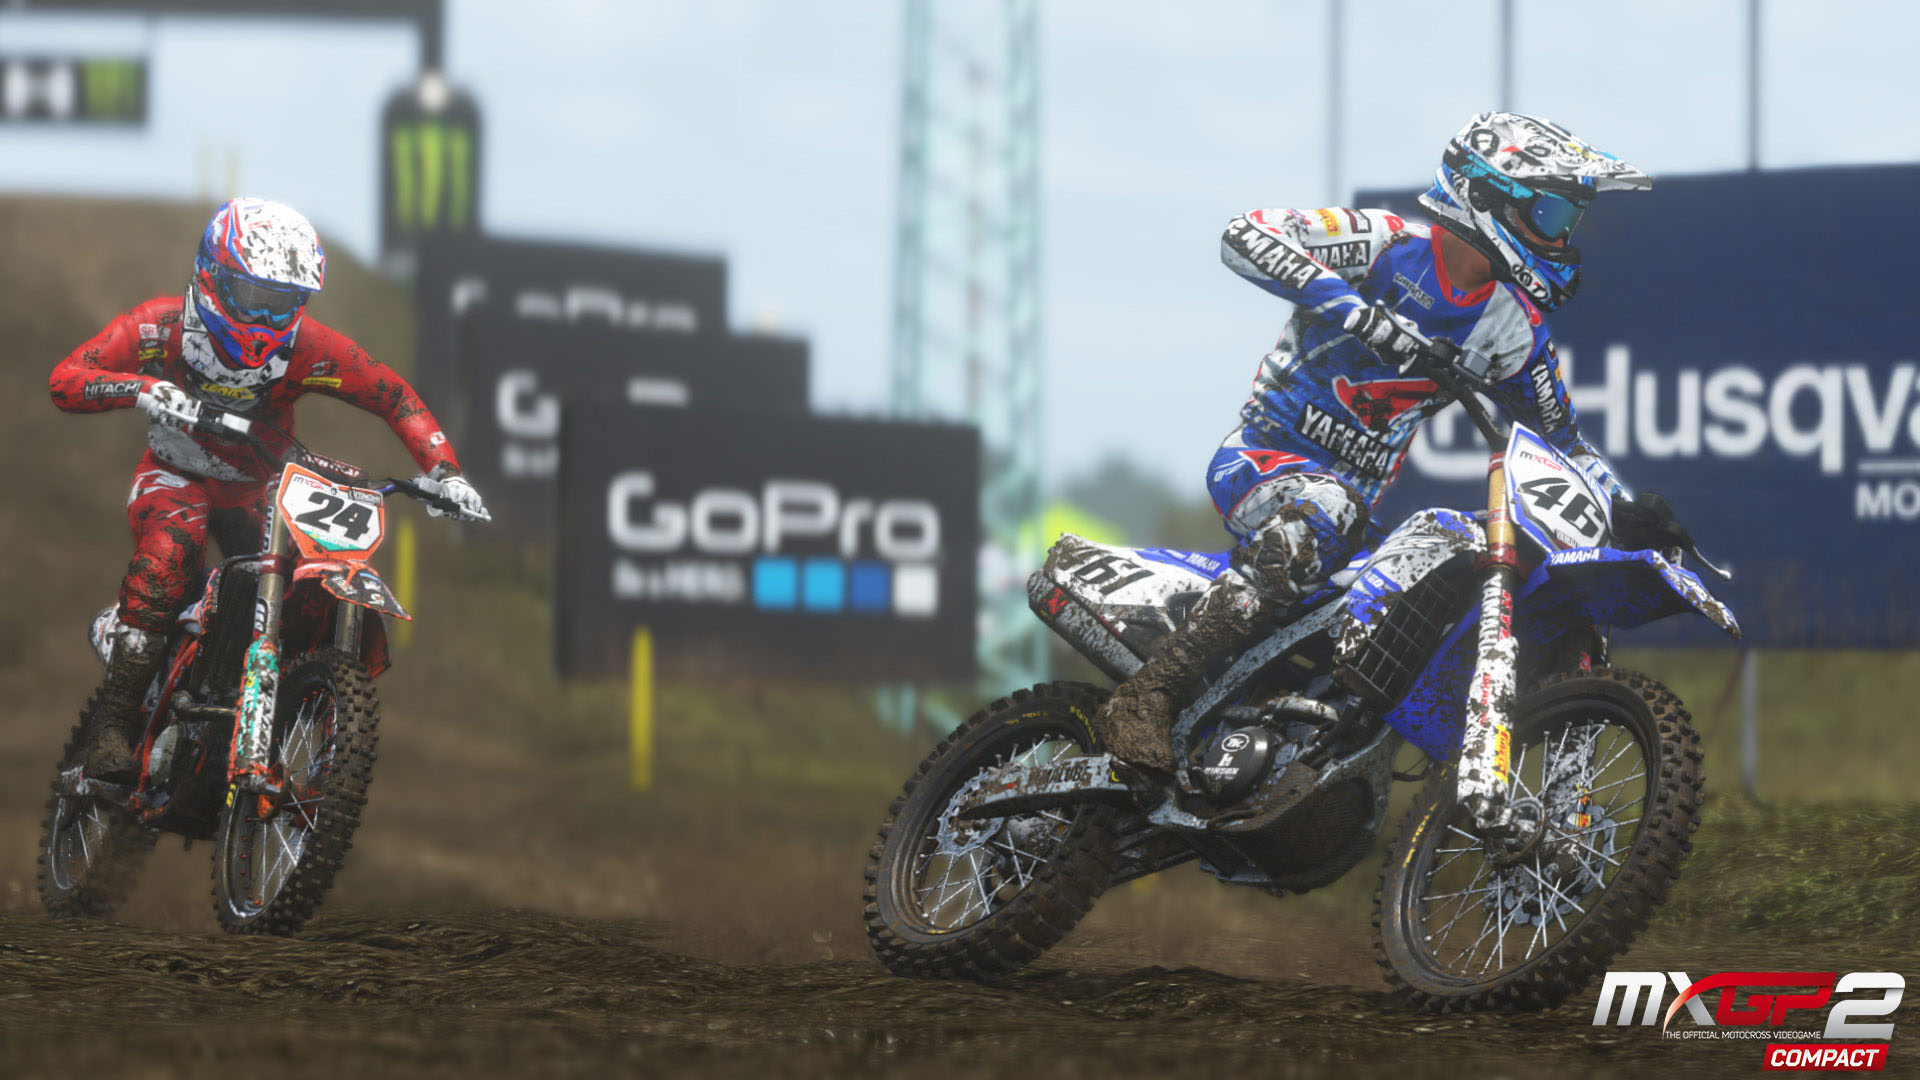 MXGP2 - The Official Motocross Videogame Compact screenshot